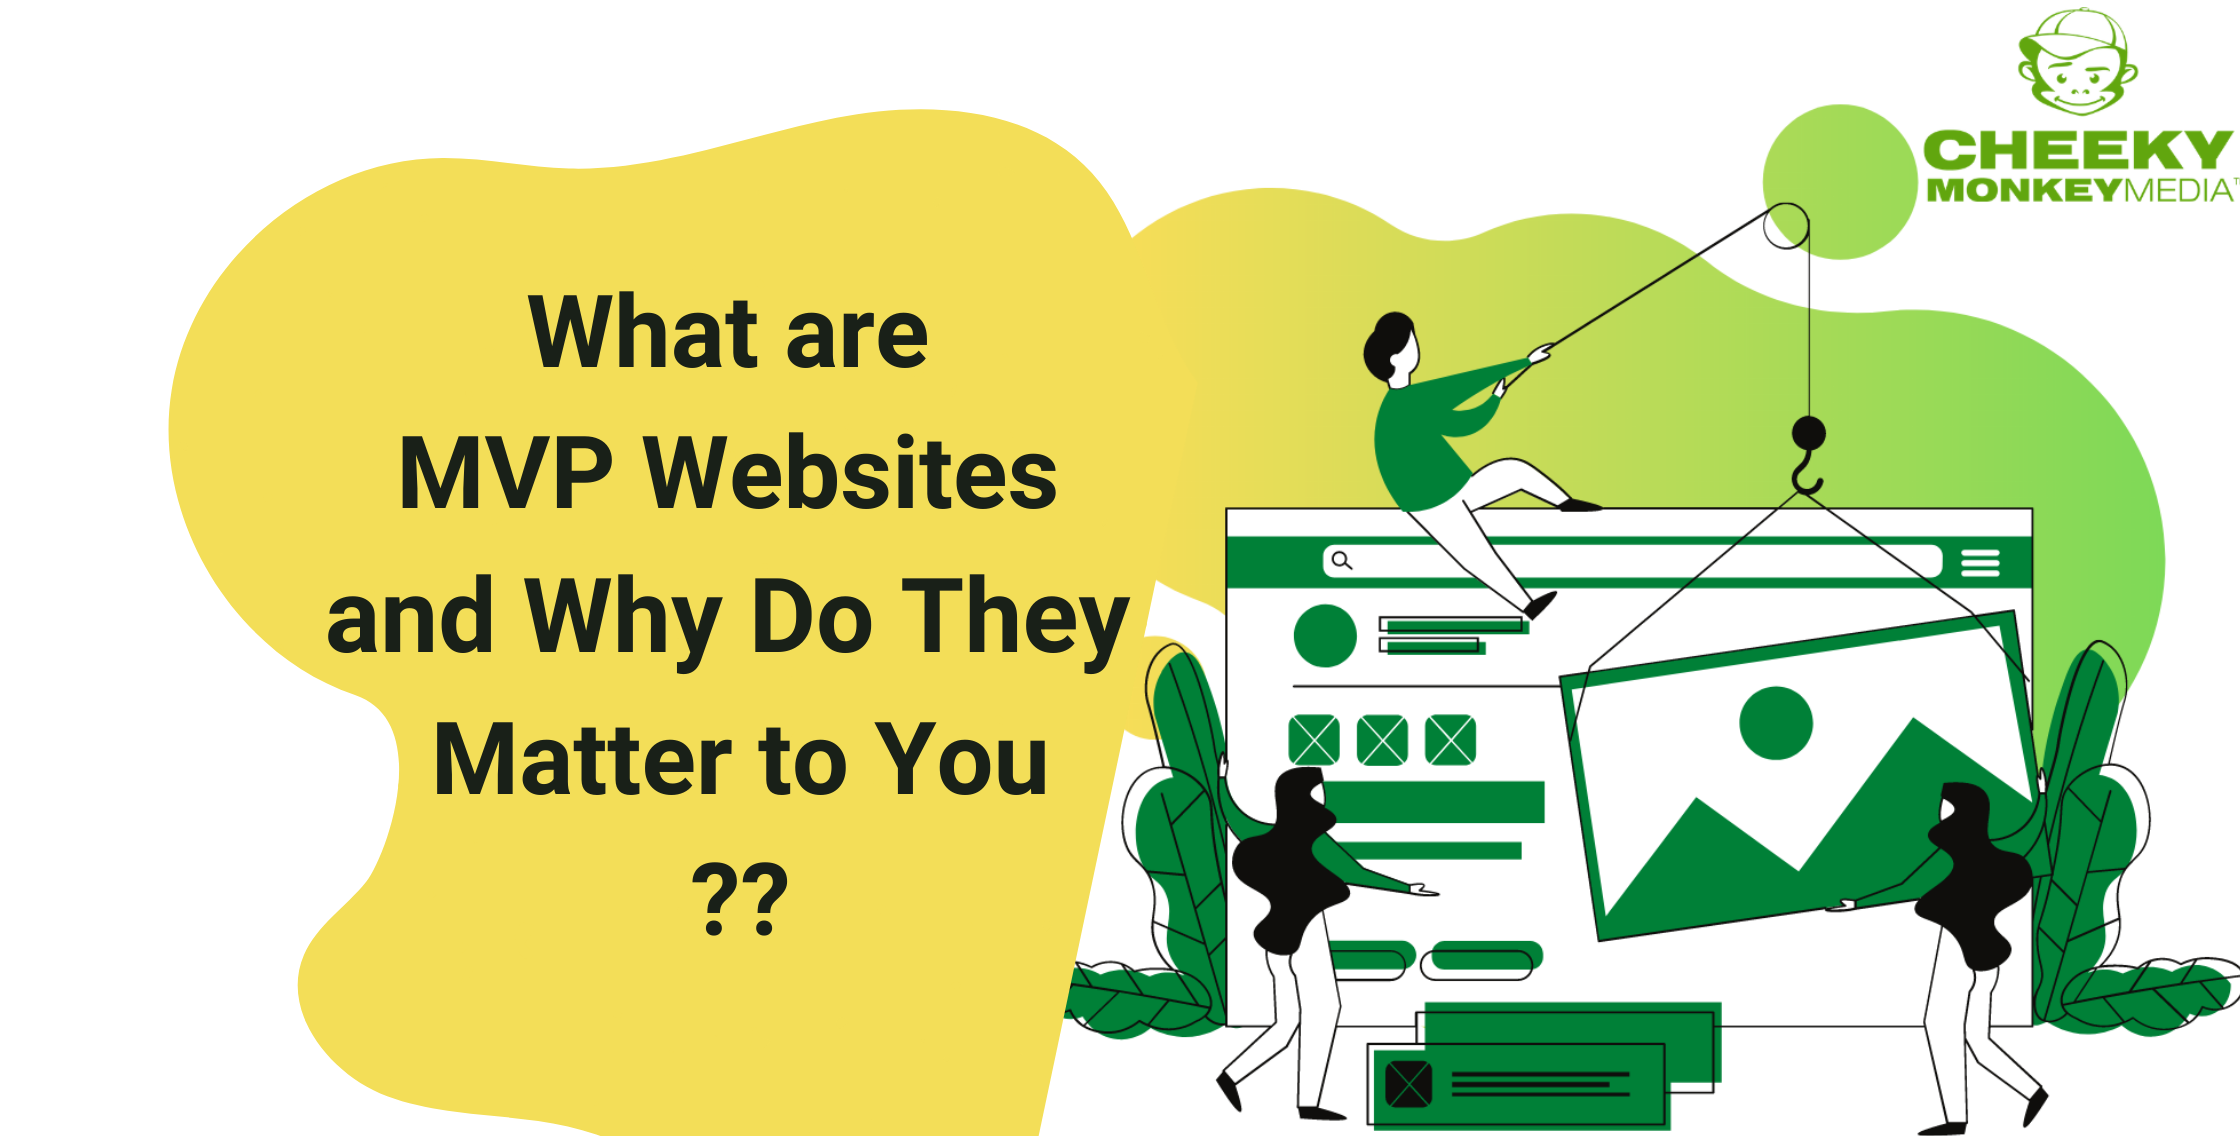 What are MVP Websites and Why They Matter to You